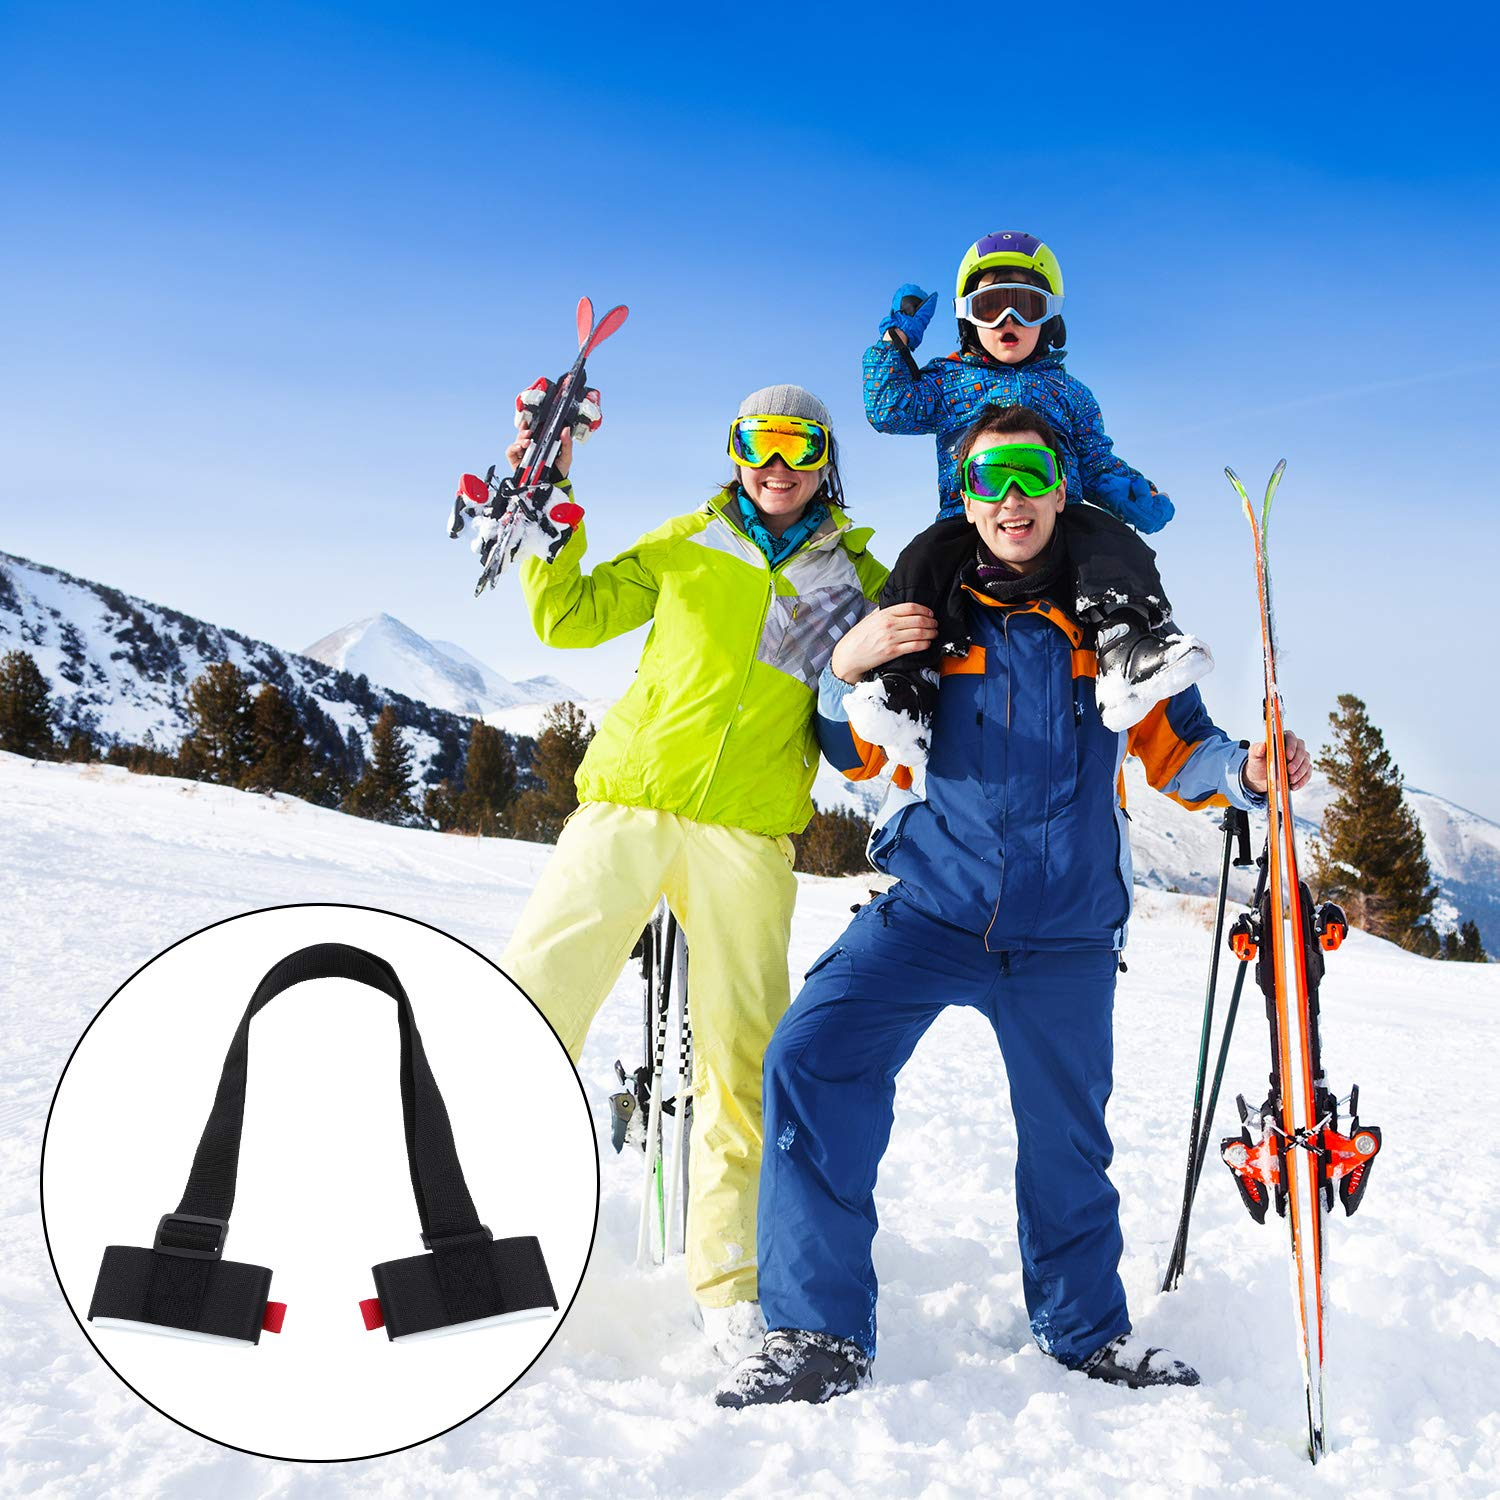 Chuangdi 2 Pack Ski Strap and Pole Carrier Adjustable Shoulder Carrier Strap Backpack Alpine Touring Ski Downhill Ski Bindings with Cushioned Fastener Tape Strap Loop for Easily Carry